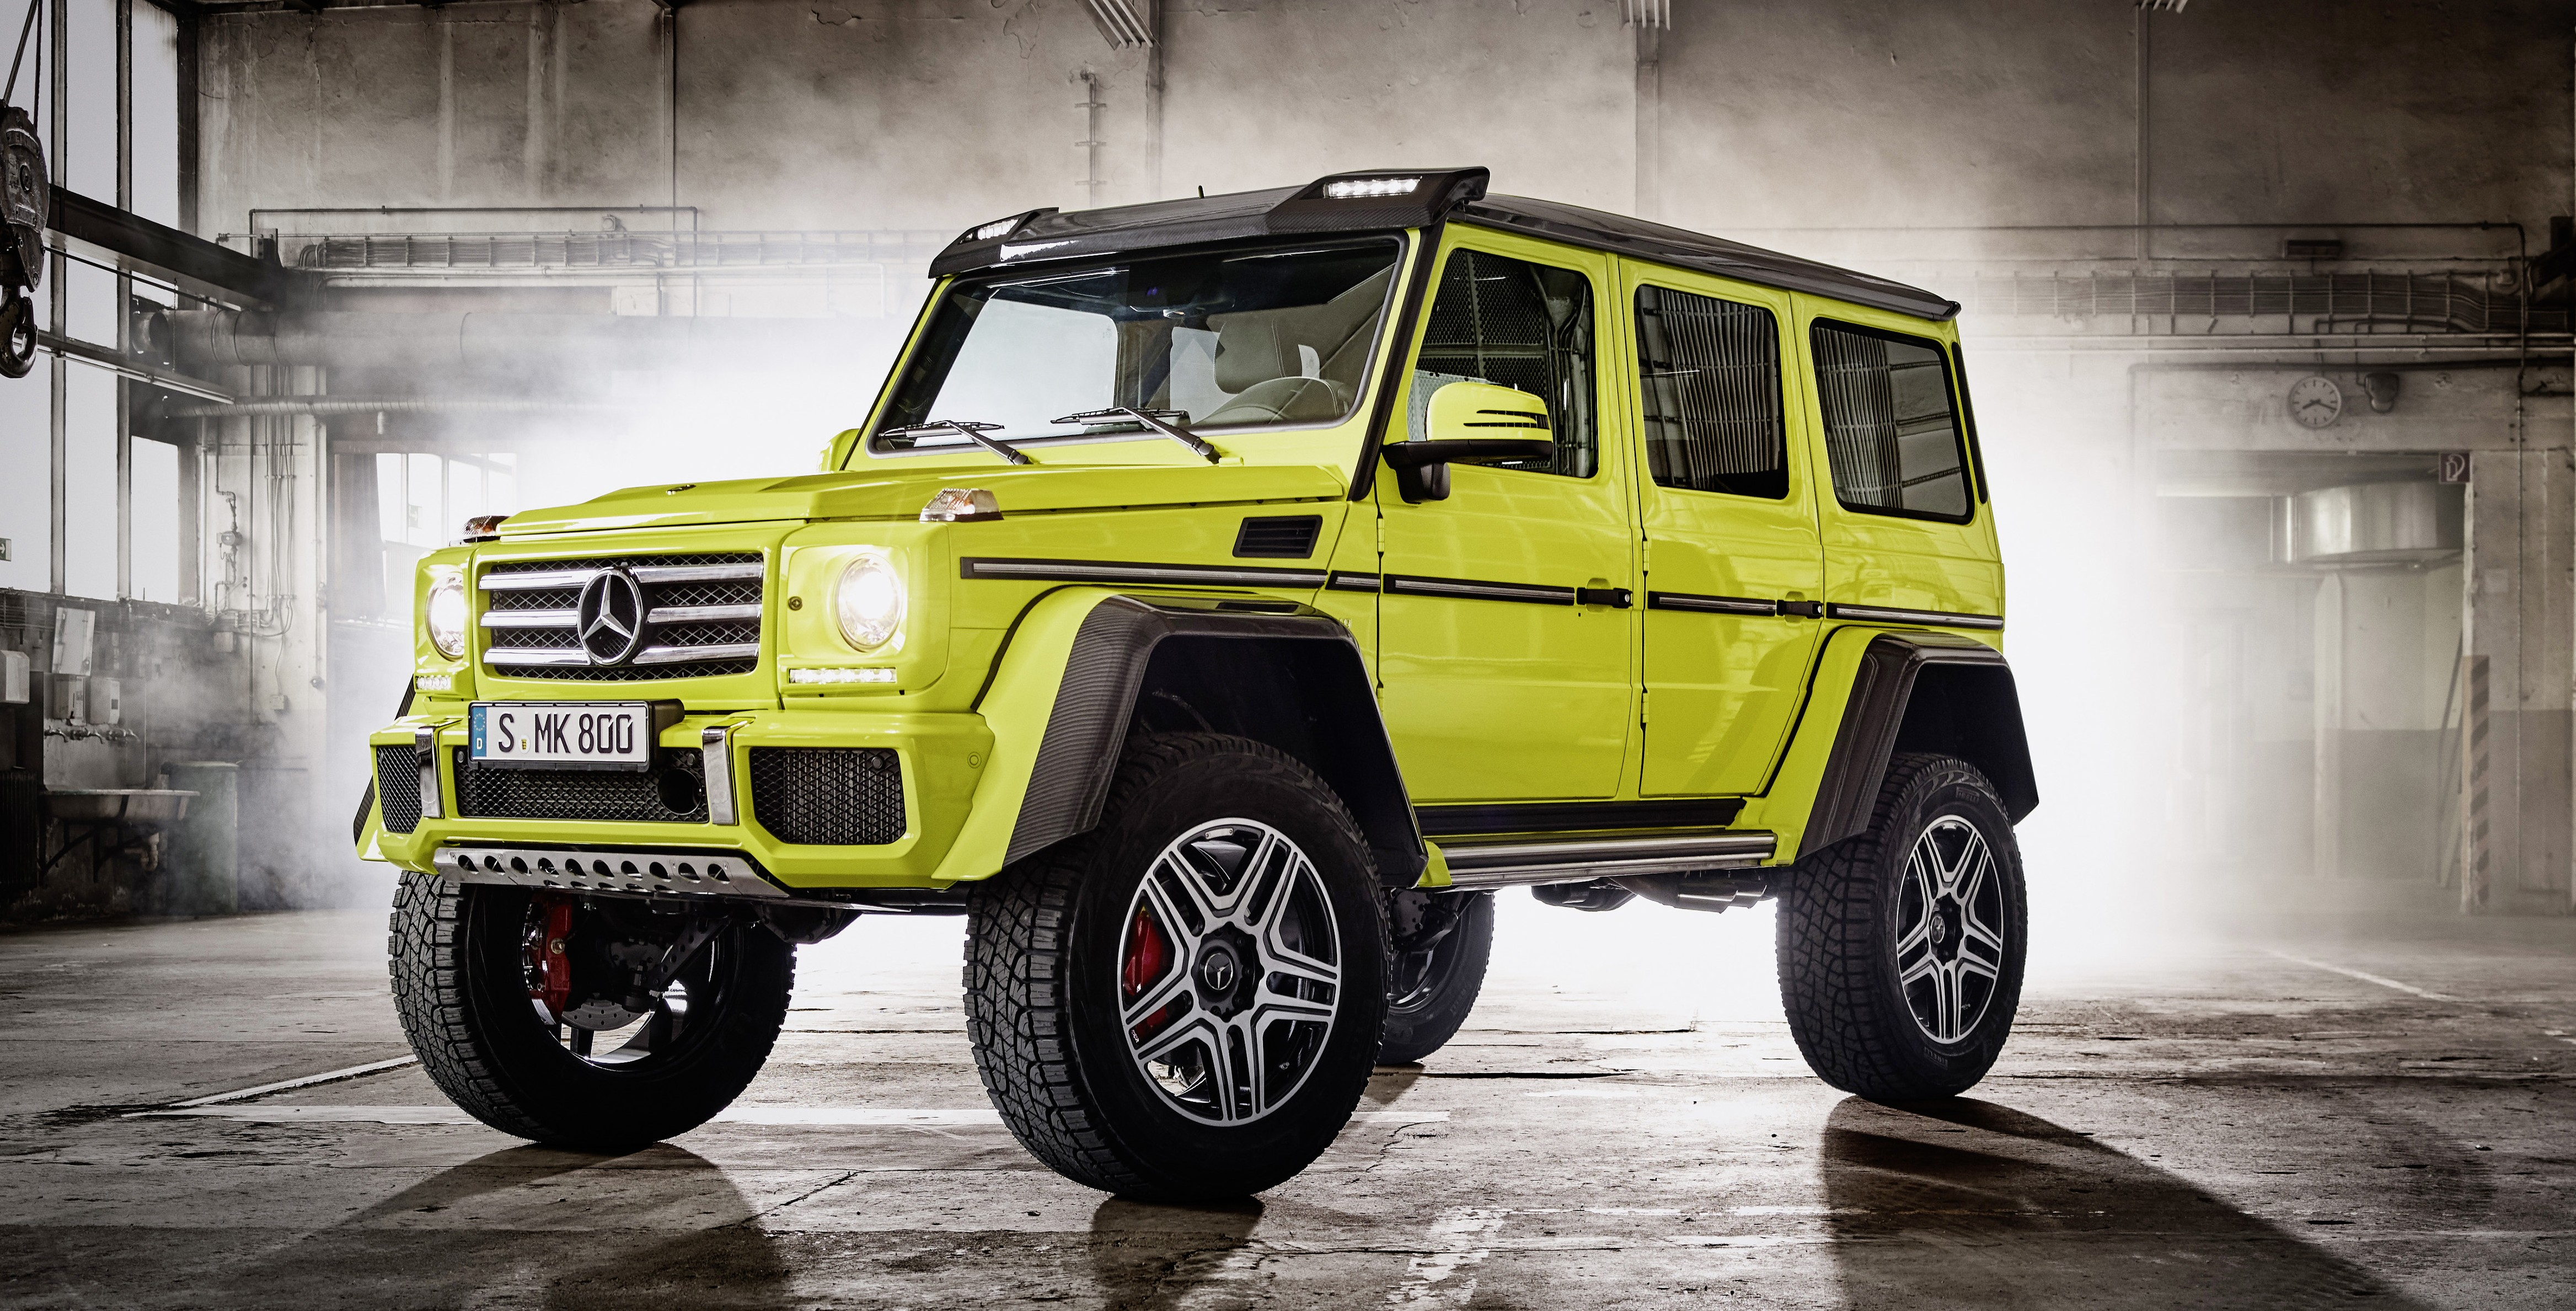 Mercedes benz g500 4x4 confirmed for production for Mercedes benz g500